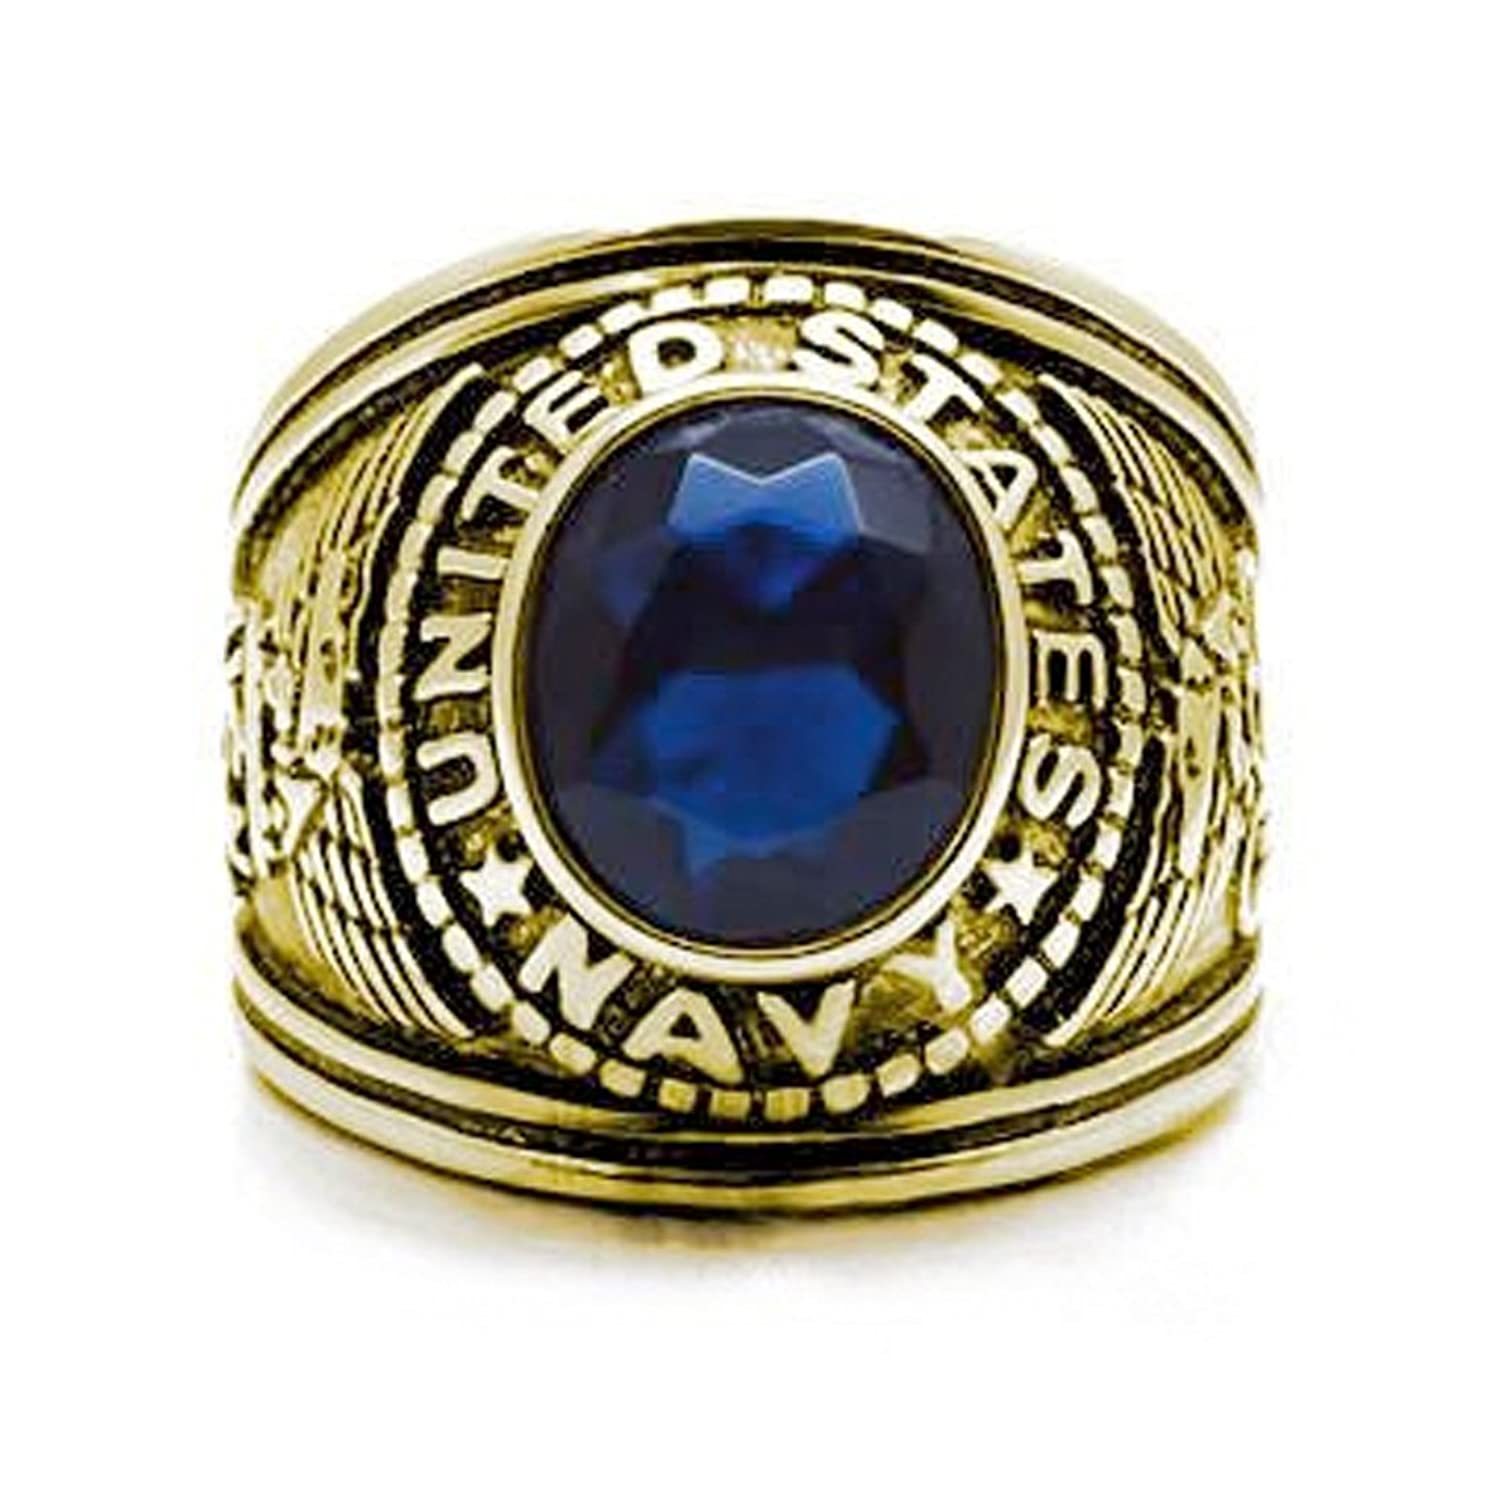 ring mens navy army rings usaf air plated military men steel rhinestones force us gold s stainless product